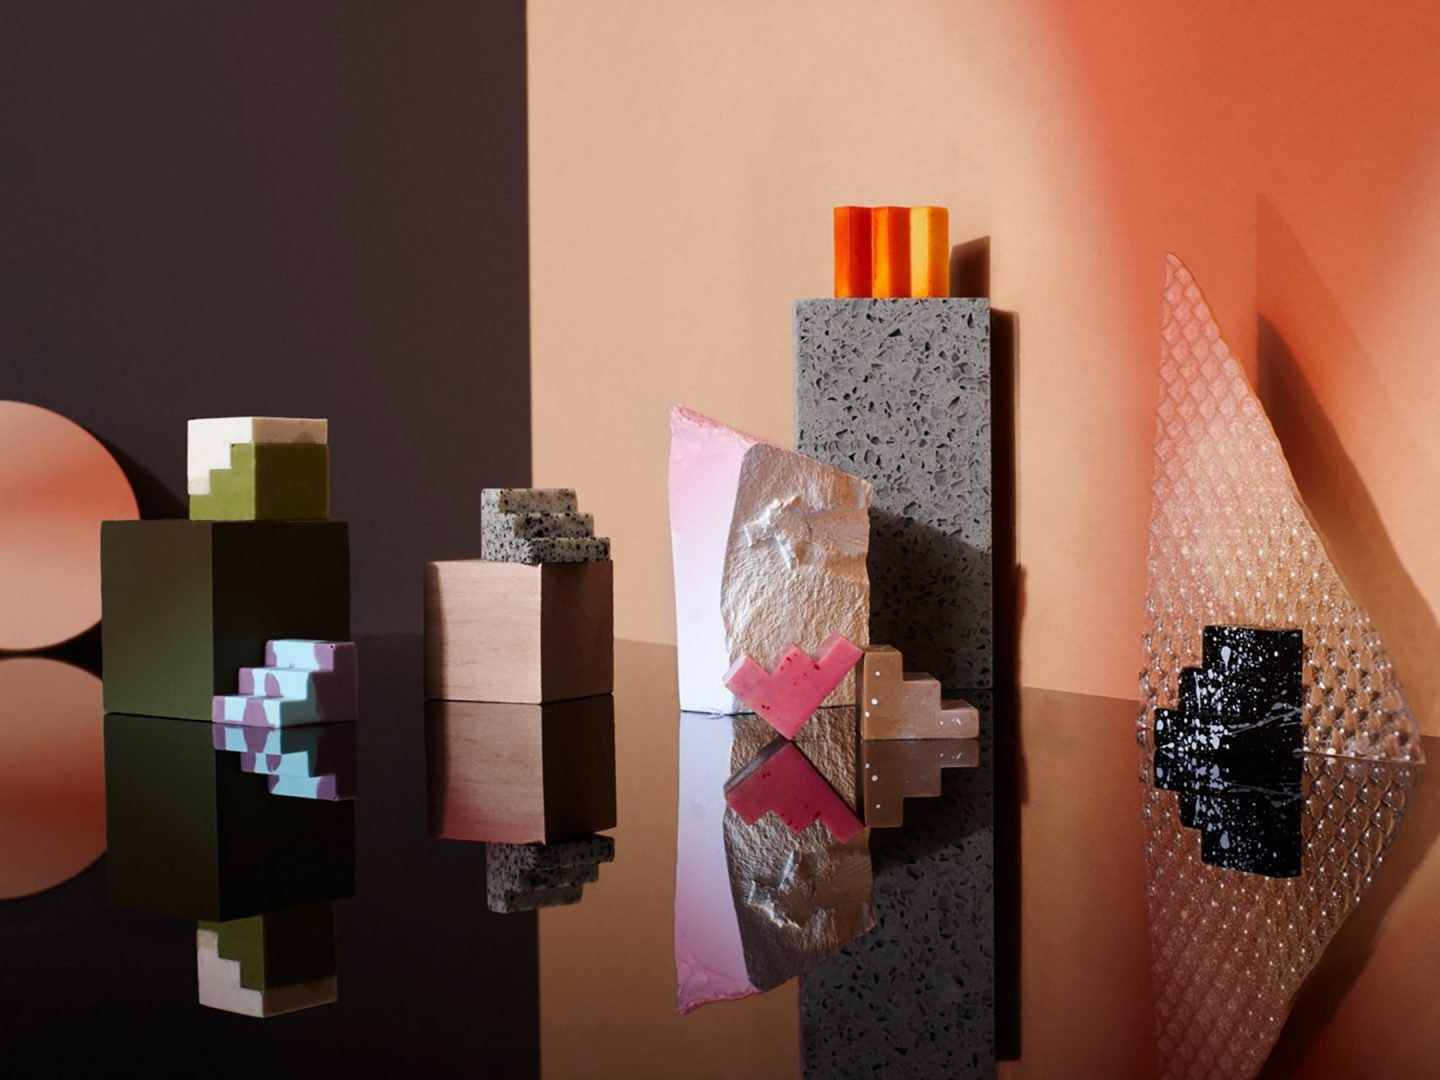 Stairstep Chocolates Designed by Universal Favourite Stack into Cubes of Complementary Flavors